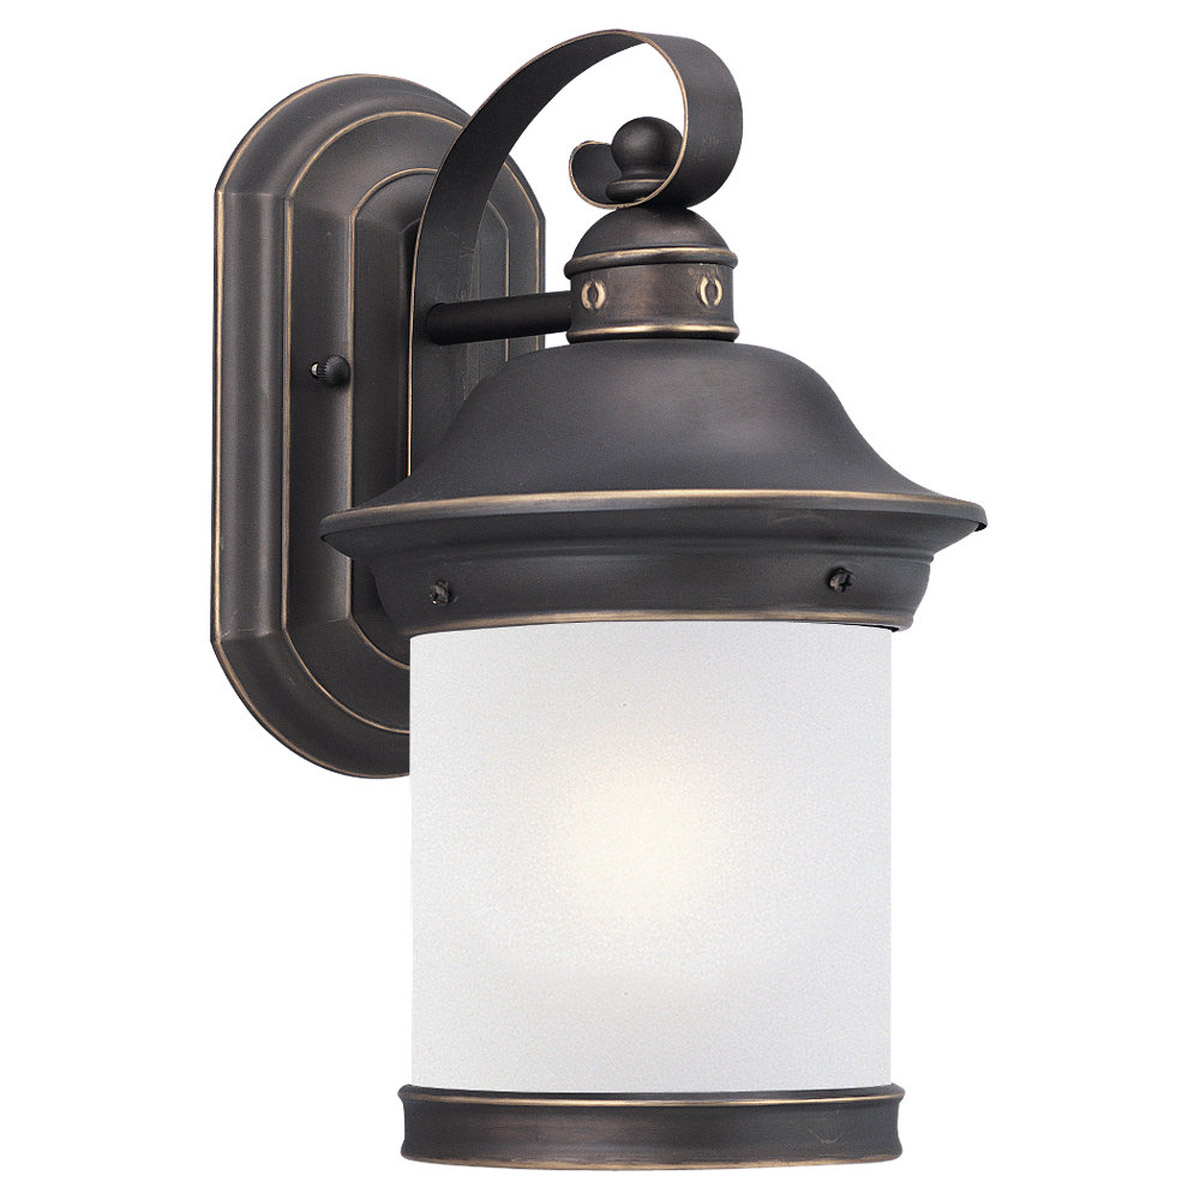 Sea Gull Lighting Hermitage 1 Light Outdoor Wall Lantern in Antique Bronze 89181BL-71 photo